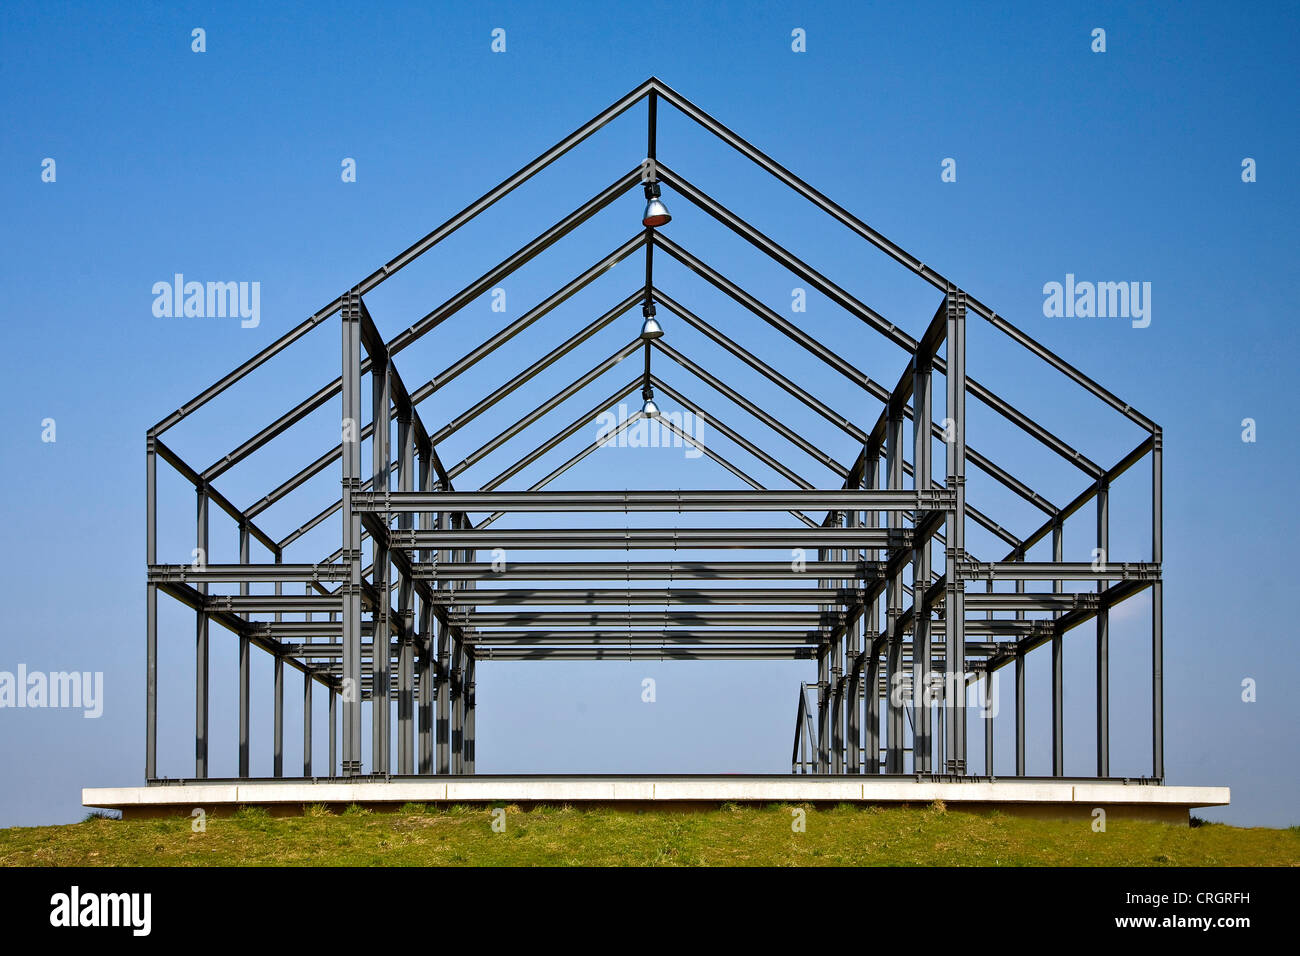 modern artwork in the form of a house on Norddeutschland stockpile, Germany, North Rhine-Westphalia, Ruhr Area, - Stock Image